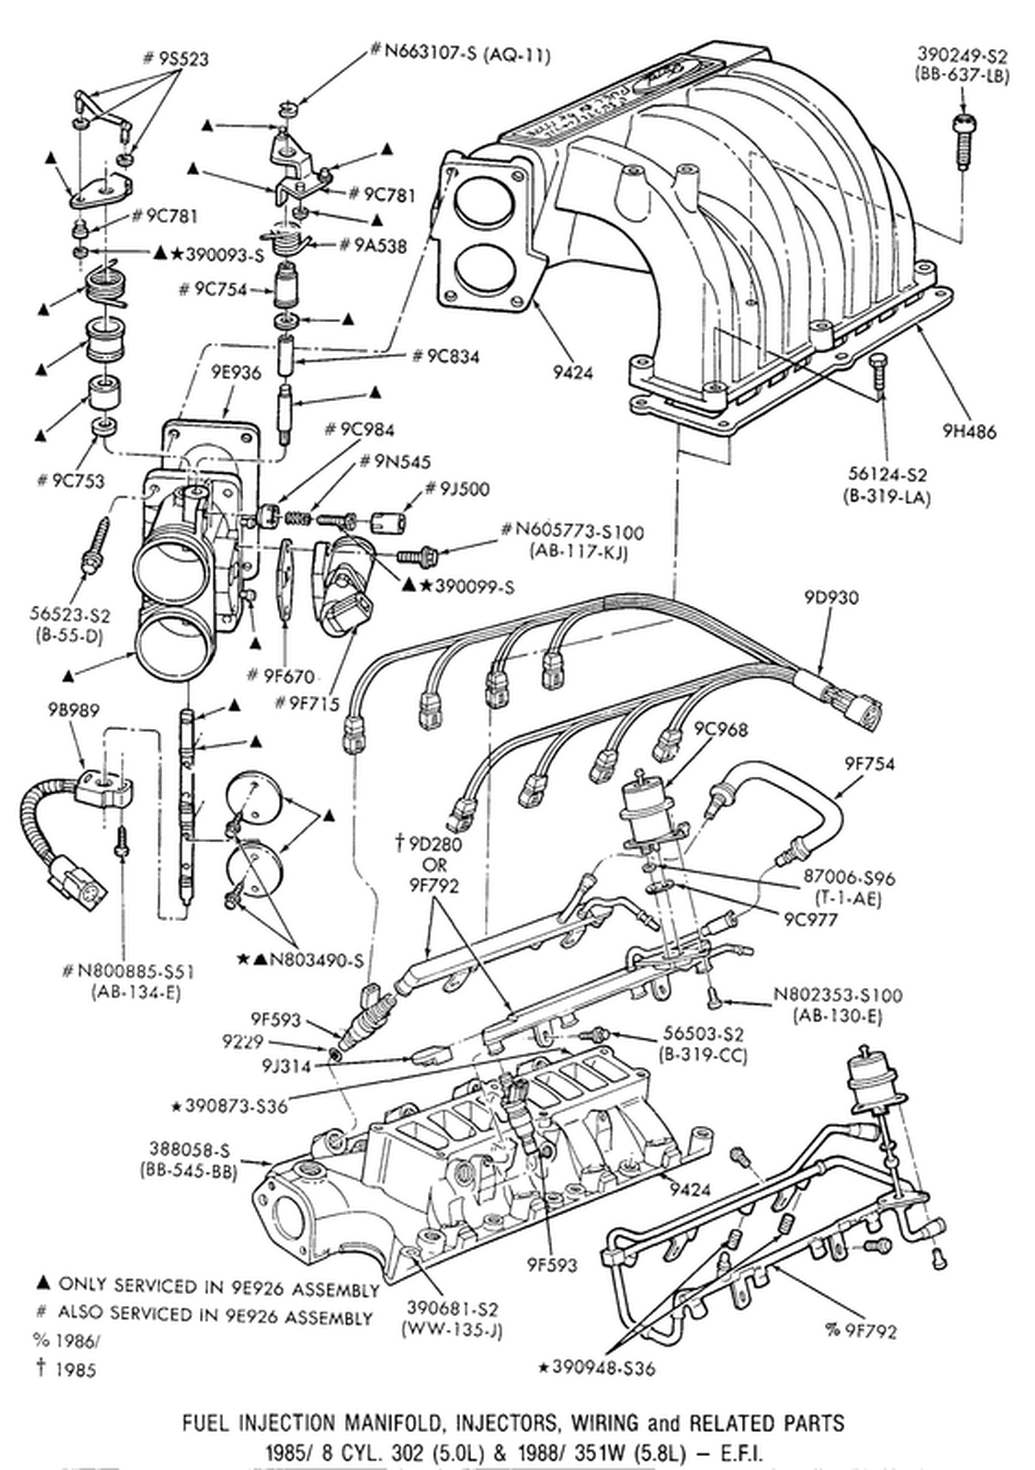 1968 Pontiac Firebird Wiring Diagram Schematic Gota Wiring Diagram